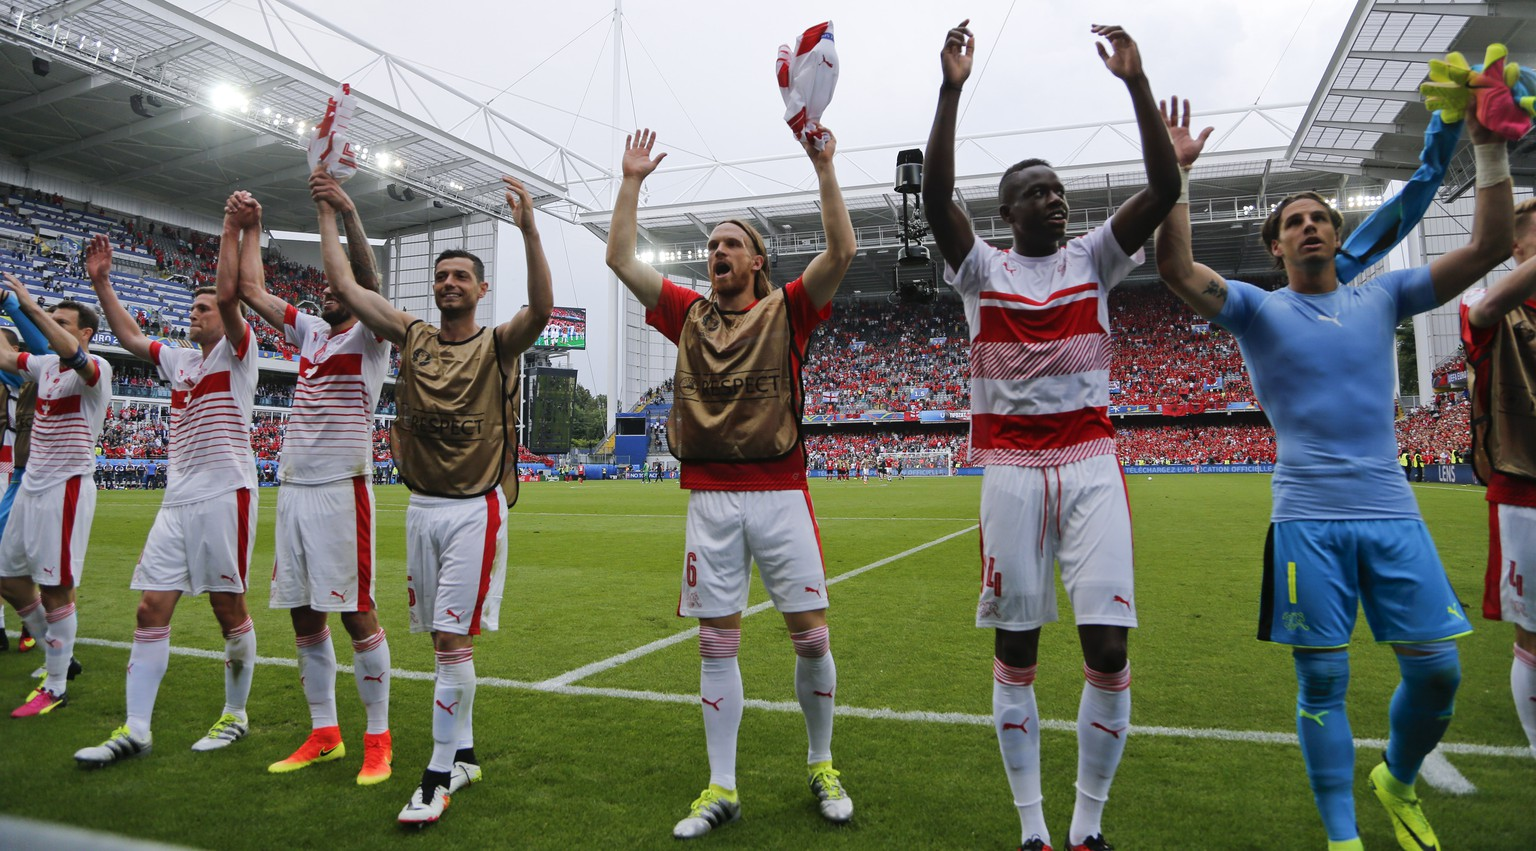 Switzerland team celebrates after the Euro 2016 Group A soccer match between Albania and Switzerland, at the Bollaert stadium in Lens, France, Saturday, June 11, 2016. Switzerland won 1-0. (AP Photo/Frank Augstein)